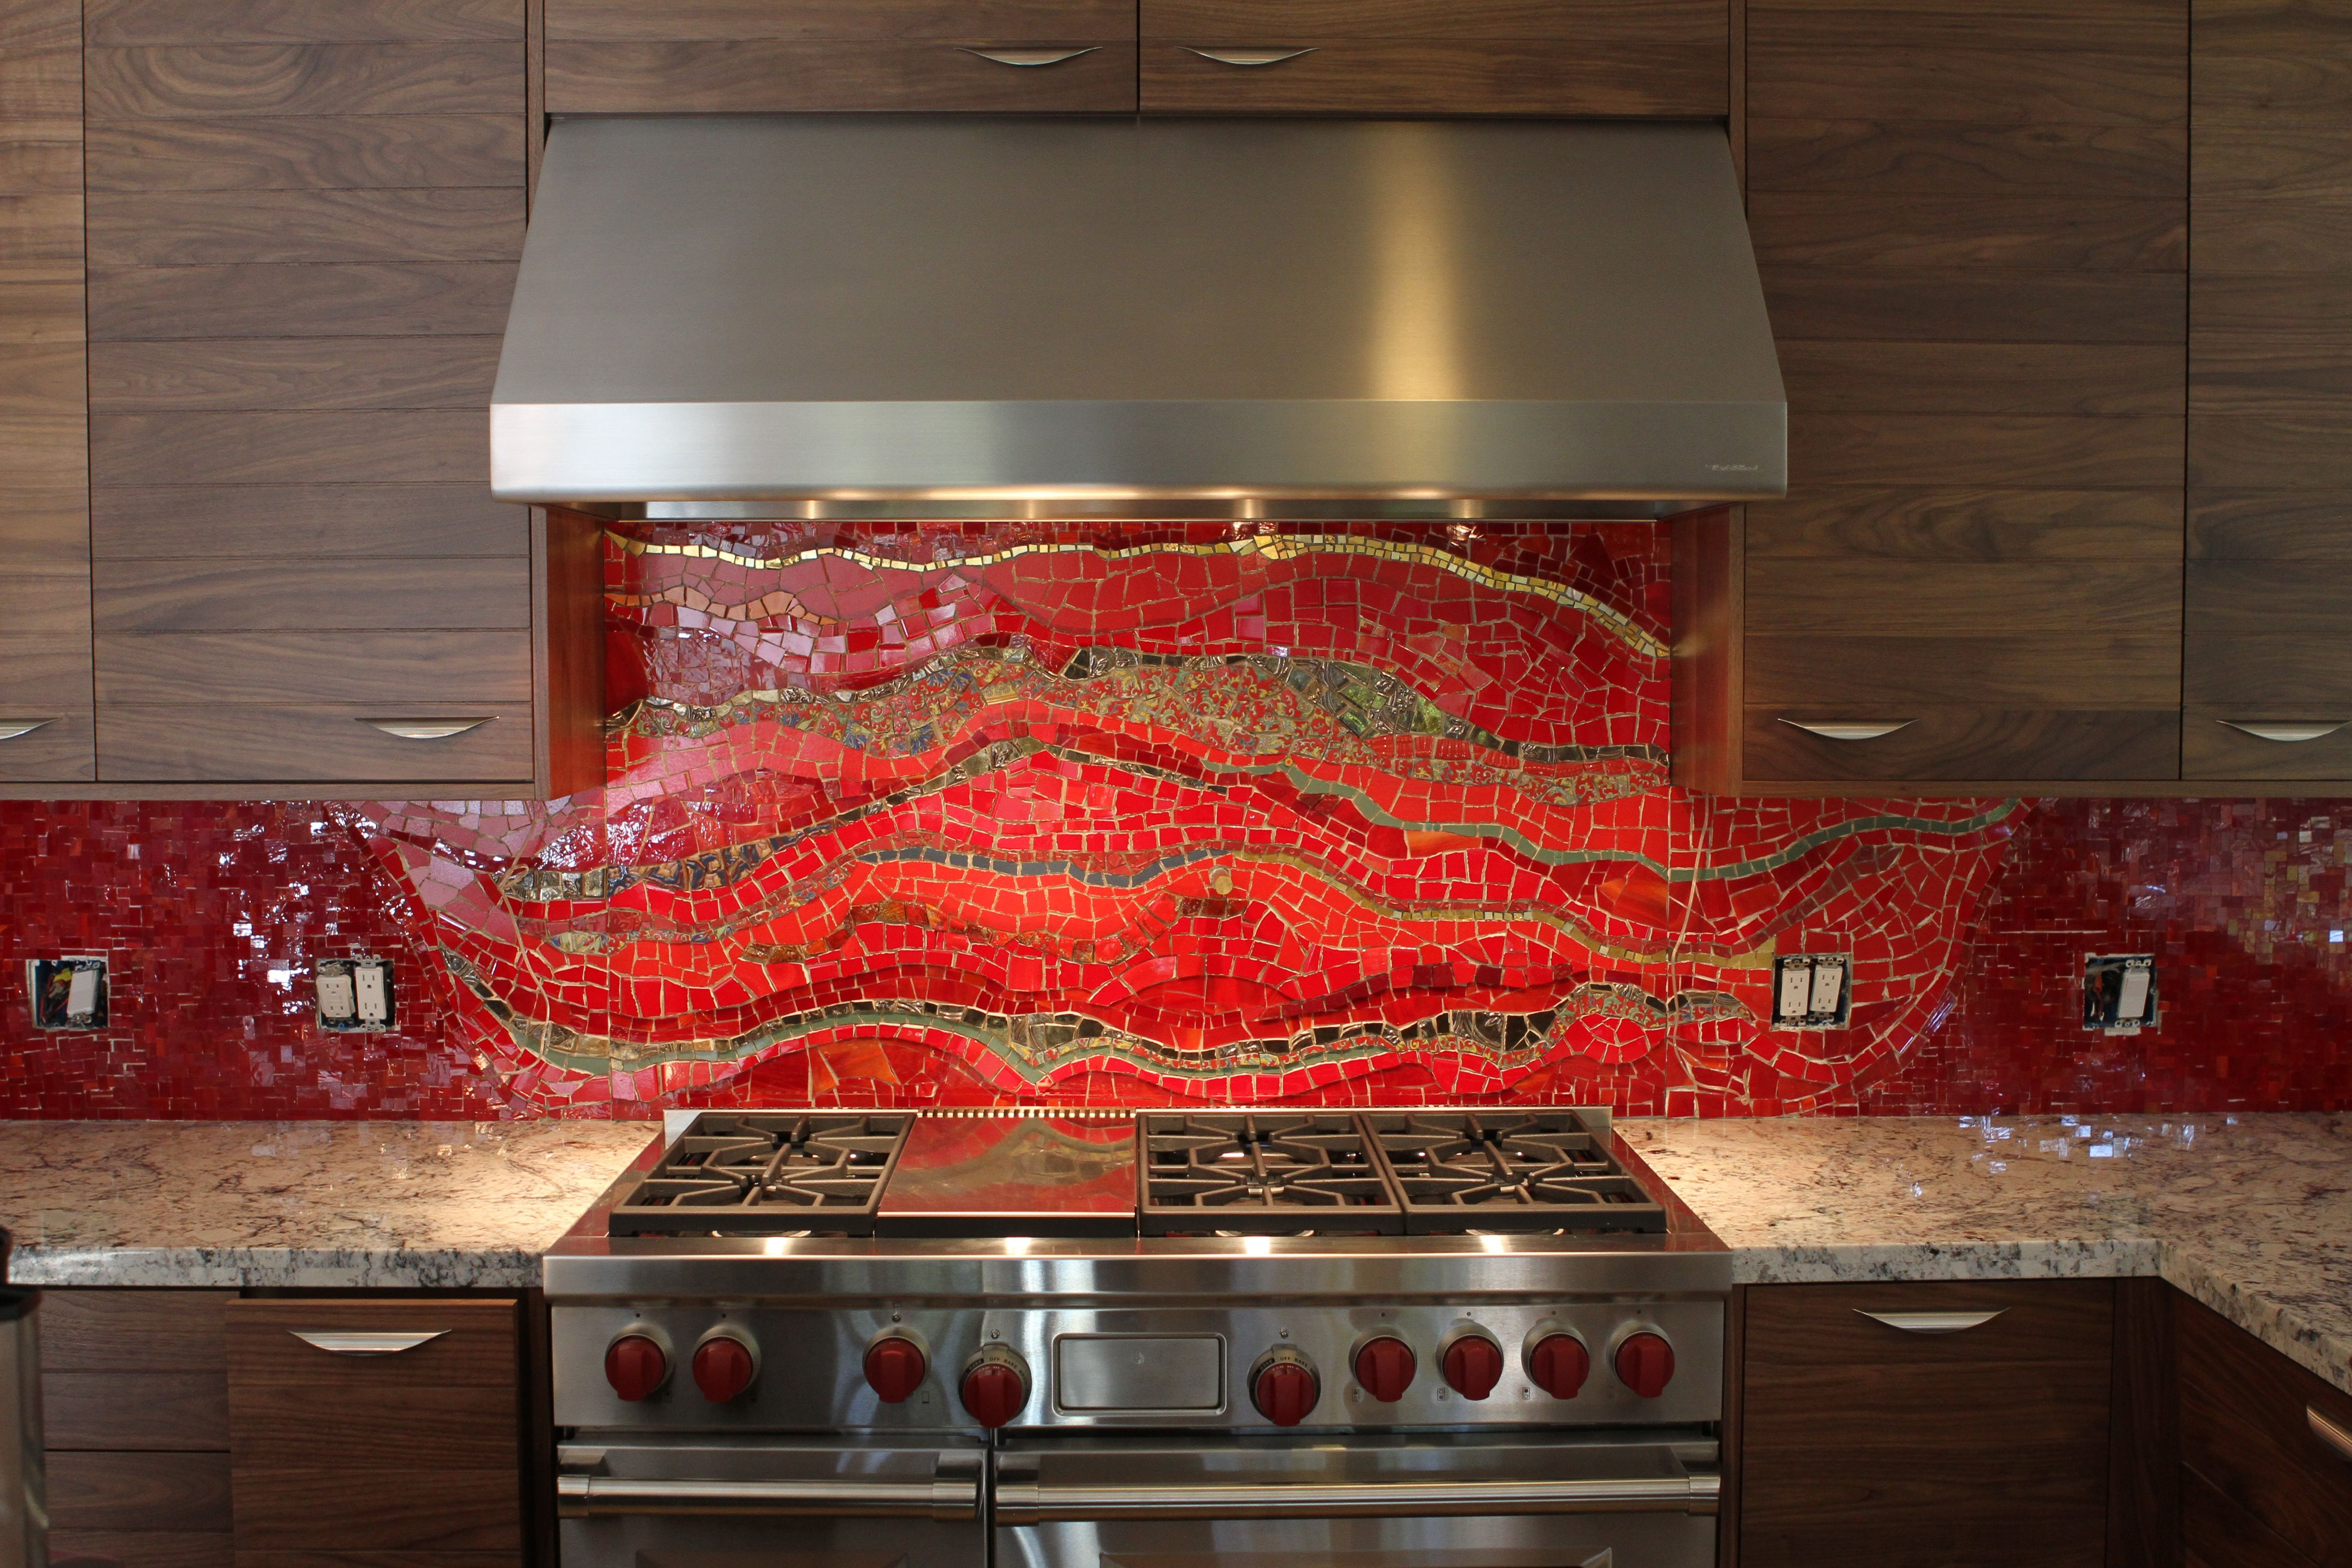 Red Kitchen Tile Backsplash Similiar Red Kitchen Backsplash Keywords